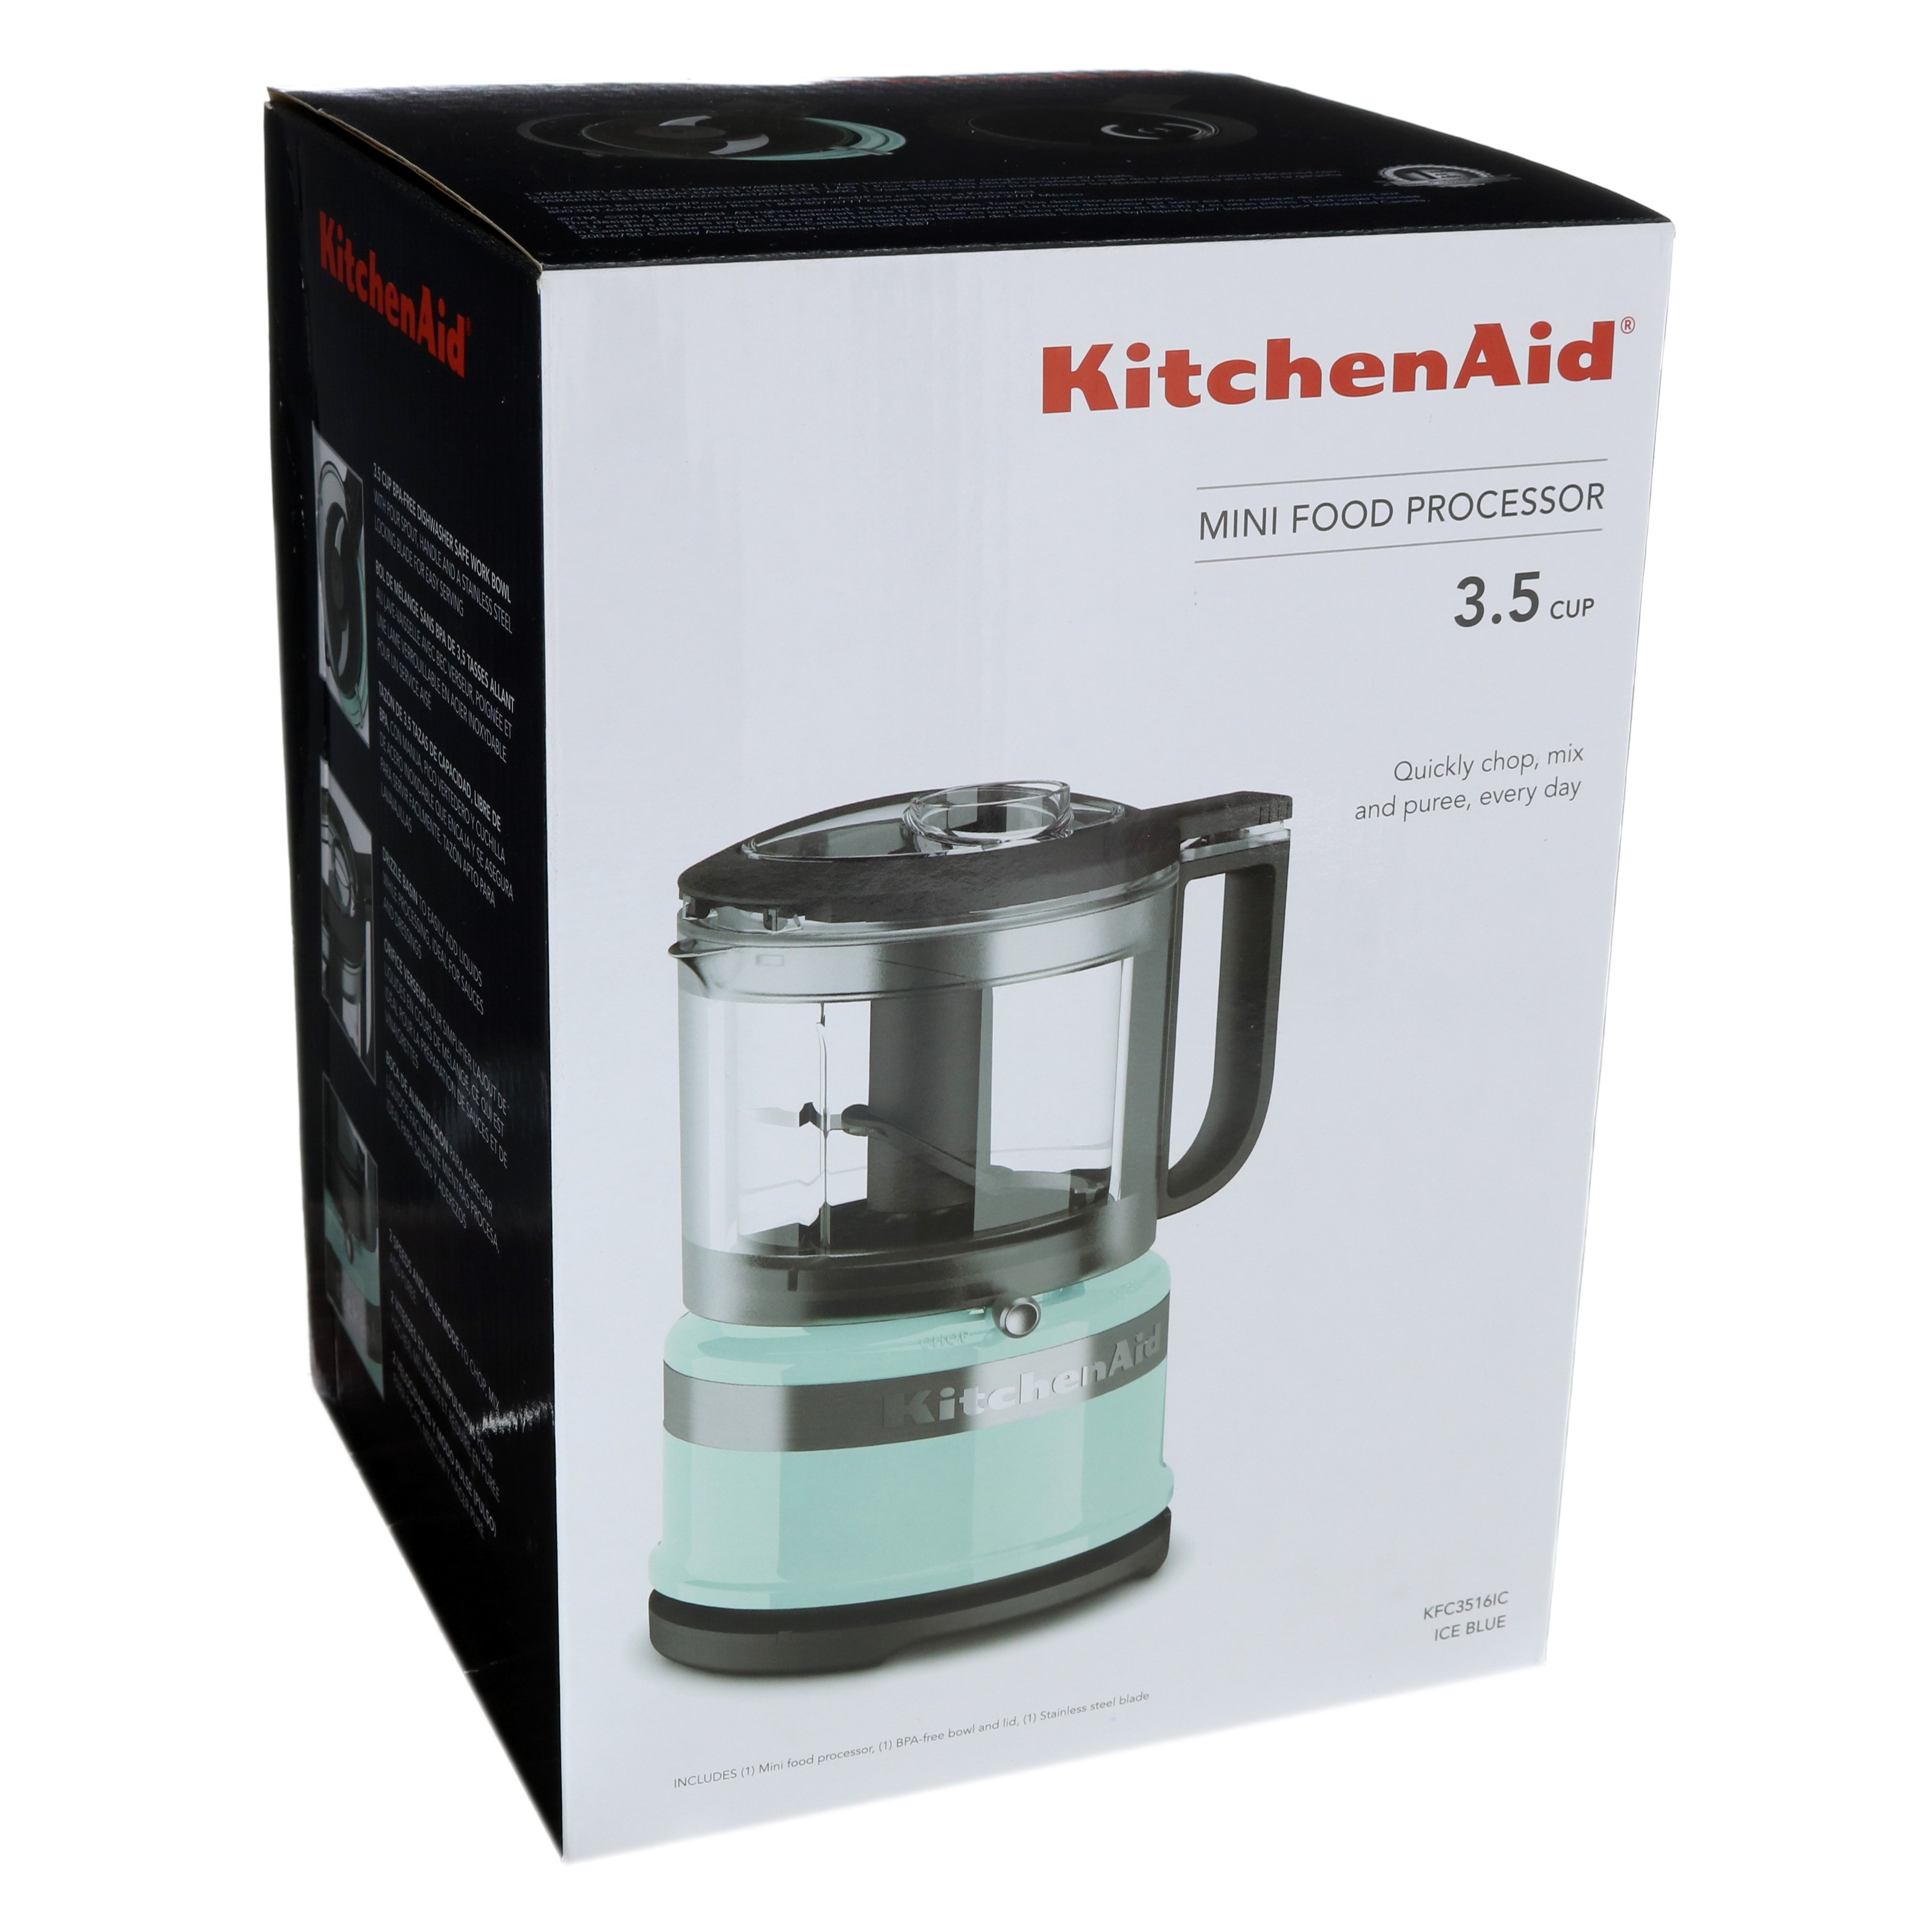 Incroyable KitchenAid 3.5 Cup Mini Food Processor, Ice Blue   Shop Blenders And Mixers  At HEB